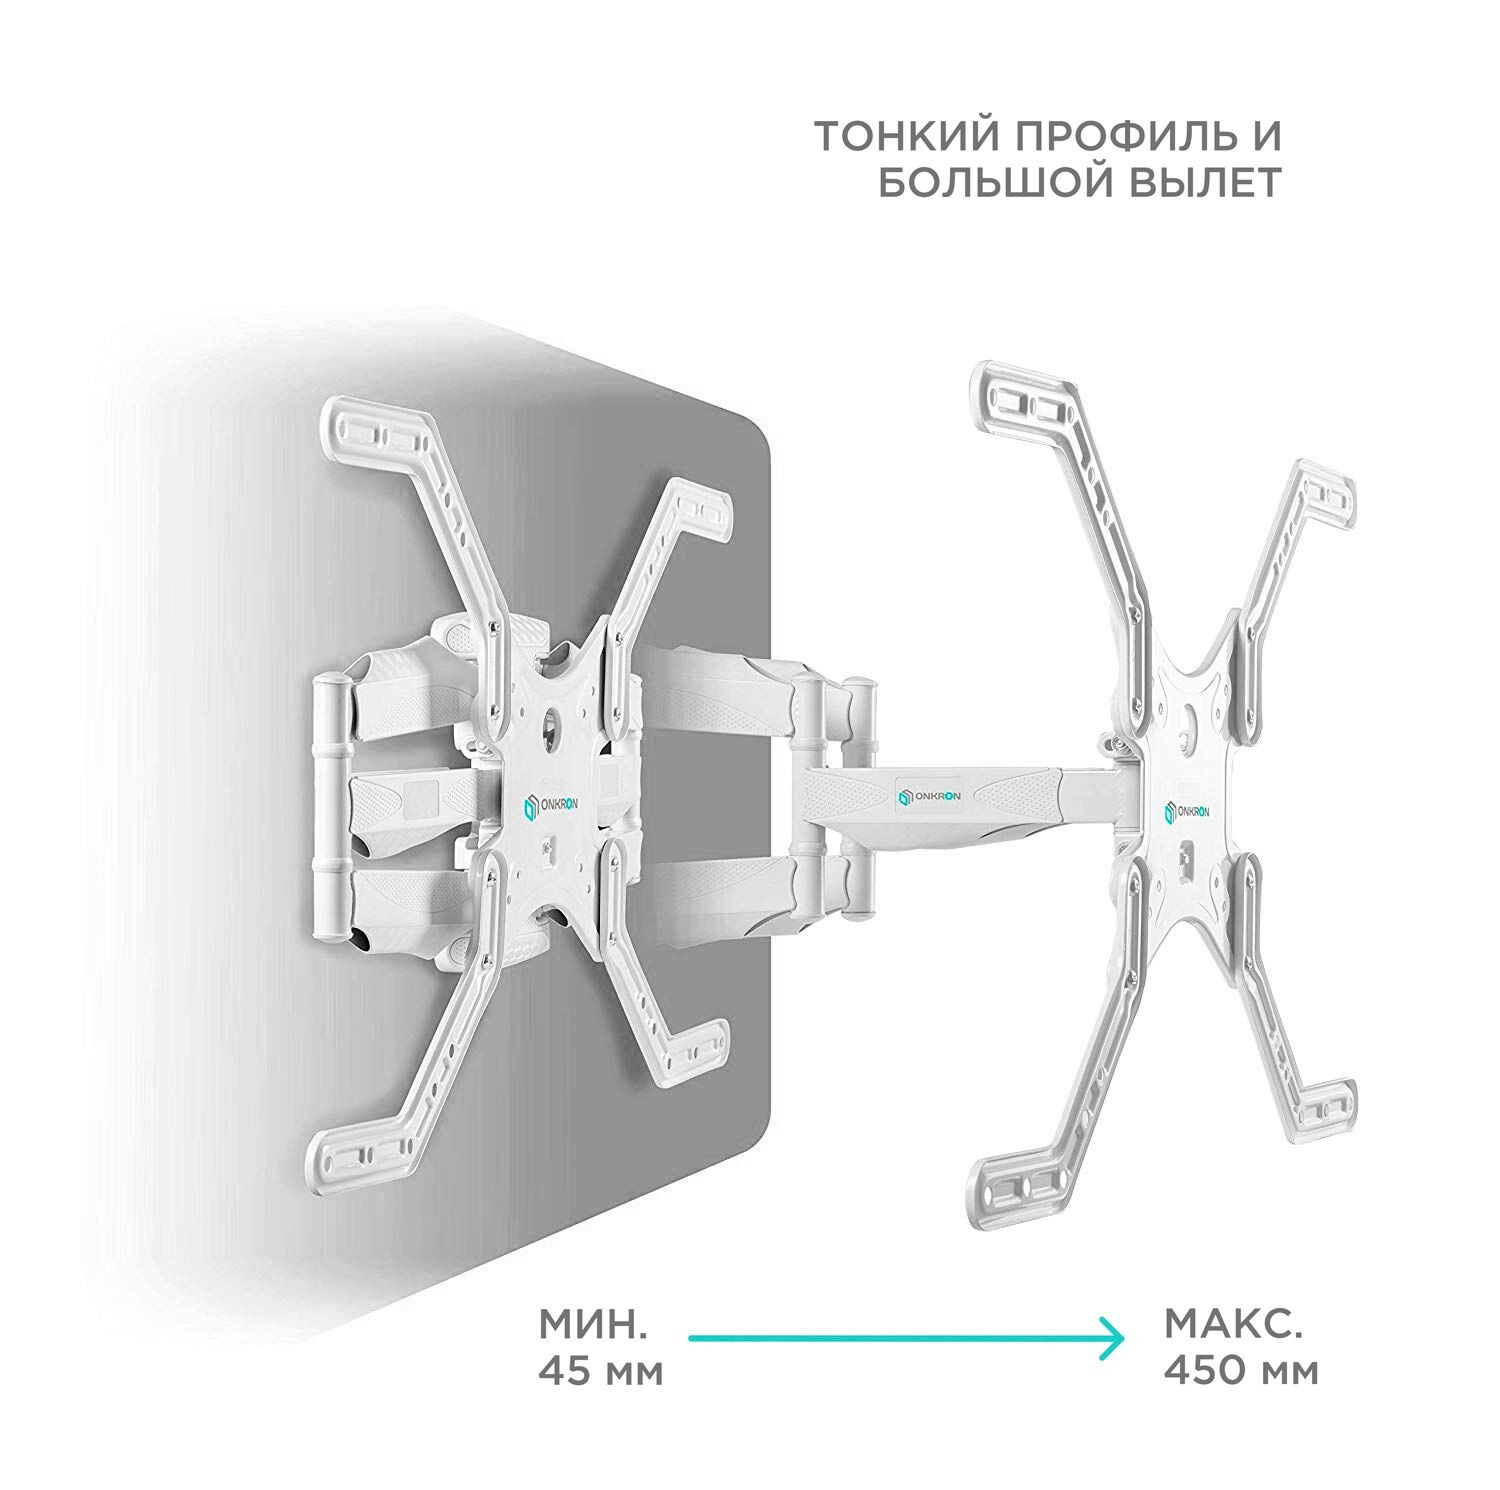 ONKRON TV Wall Mount Bracket Full Motion Articulating Arm for 32 to 70-inch LED